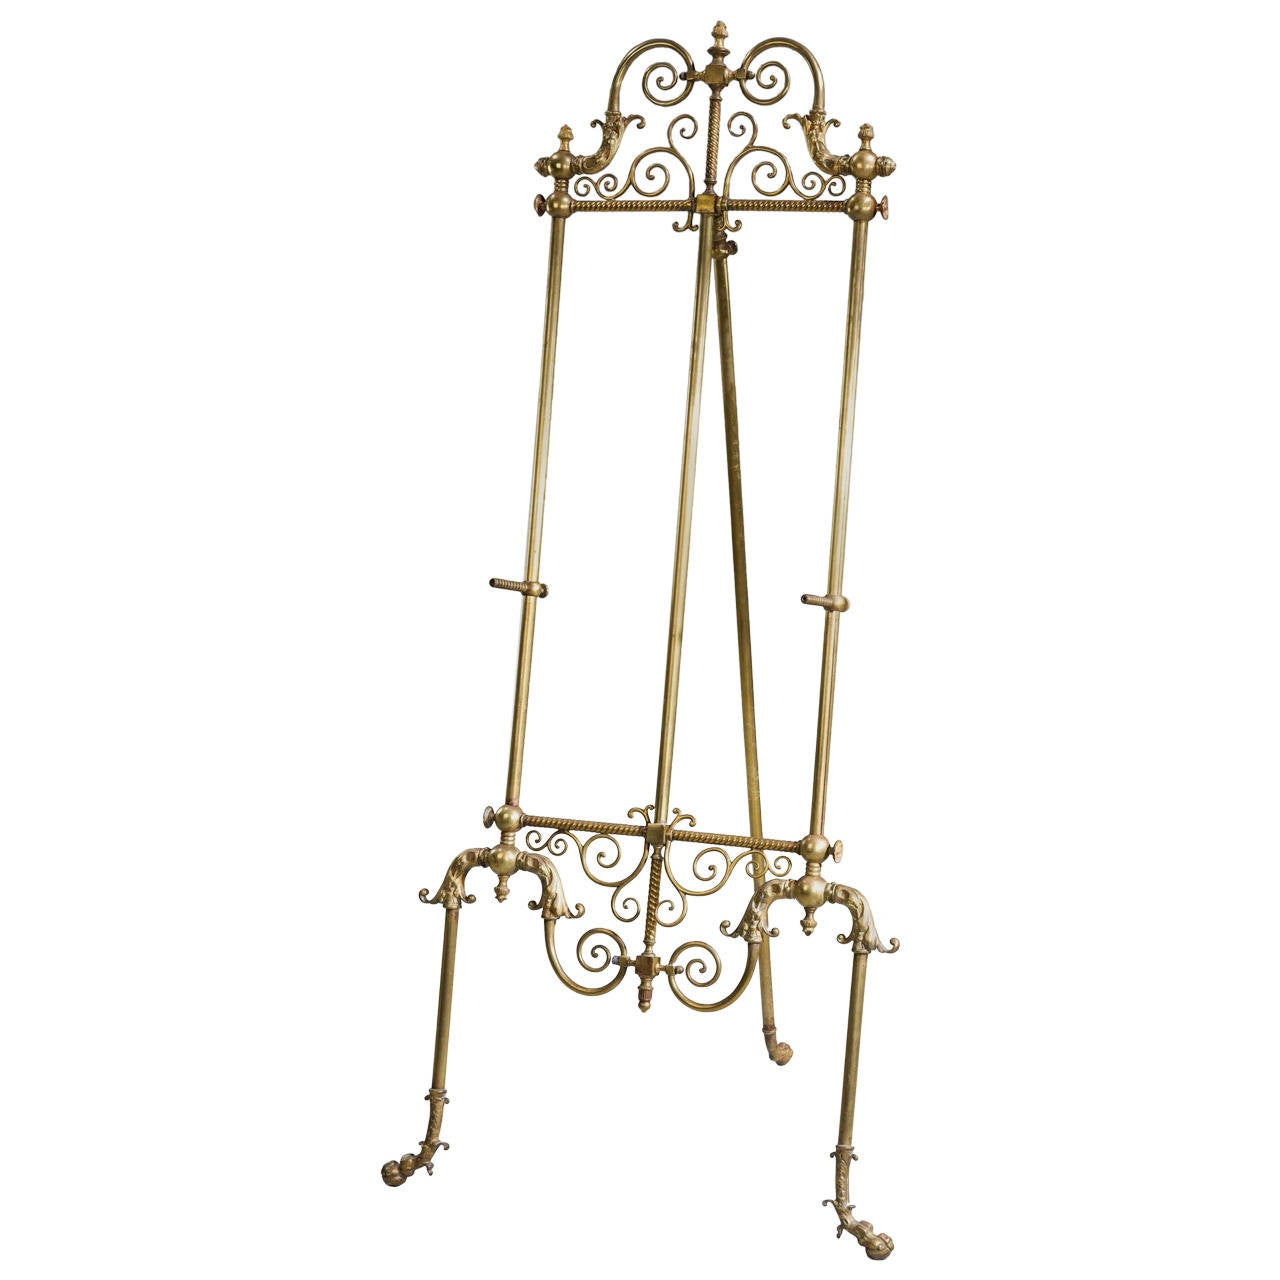 19th Century French Bronze Easel